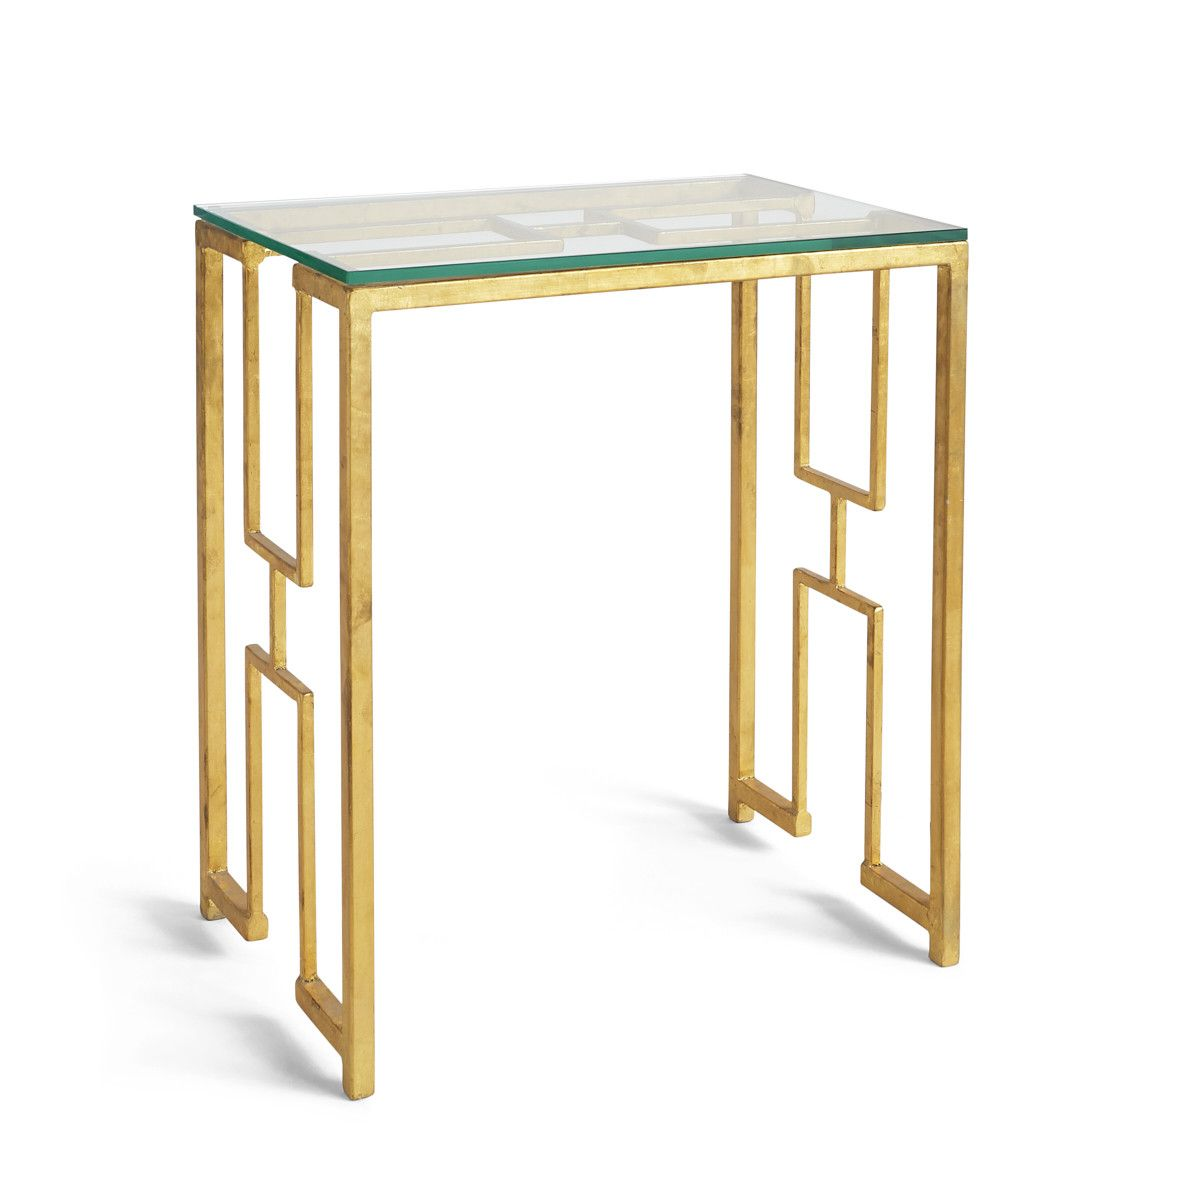 Surprising Geometric Gold Leaf Side Table Side Tables In 2019 Table Squirreltailoven Fun Painted Chair Ideas Images Squirreltailovenorg